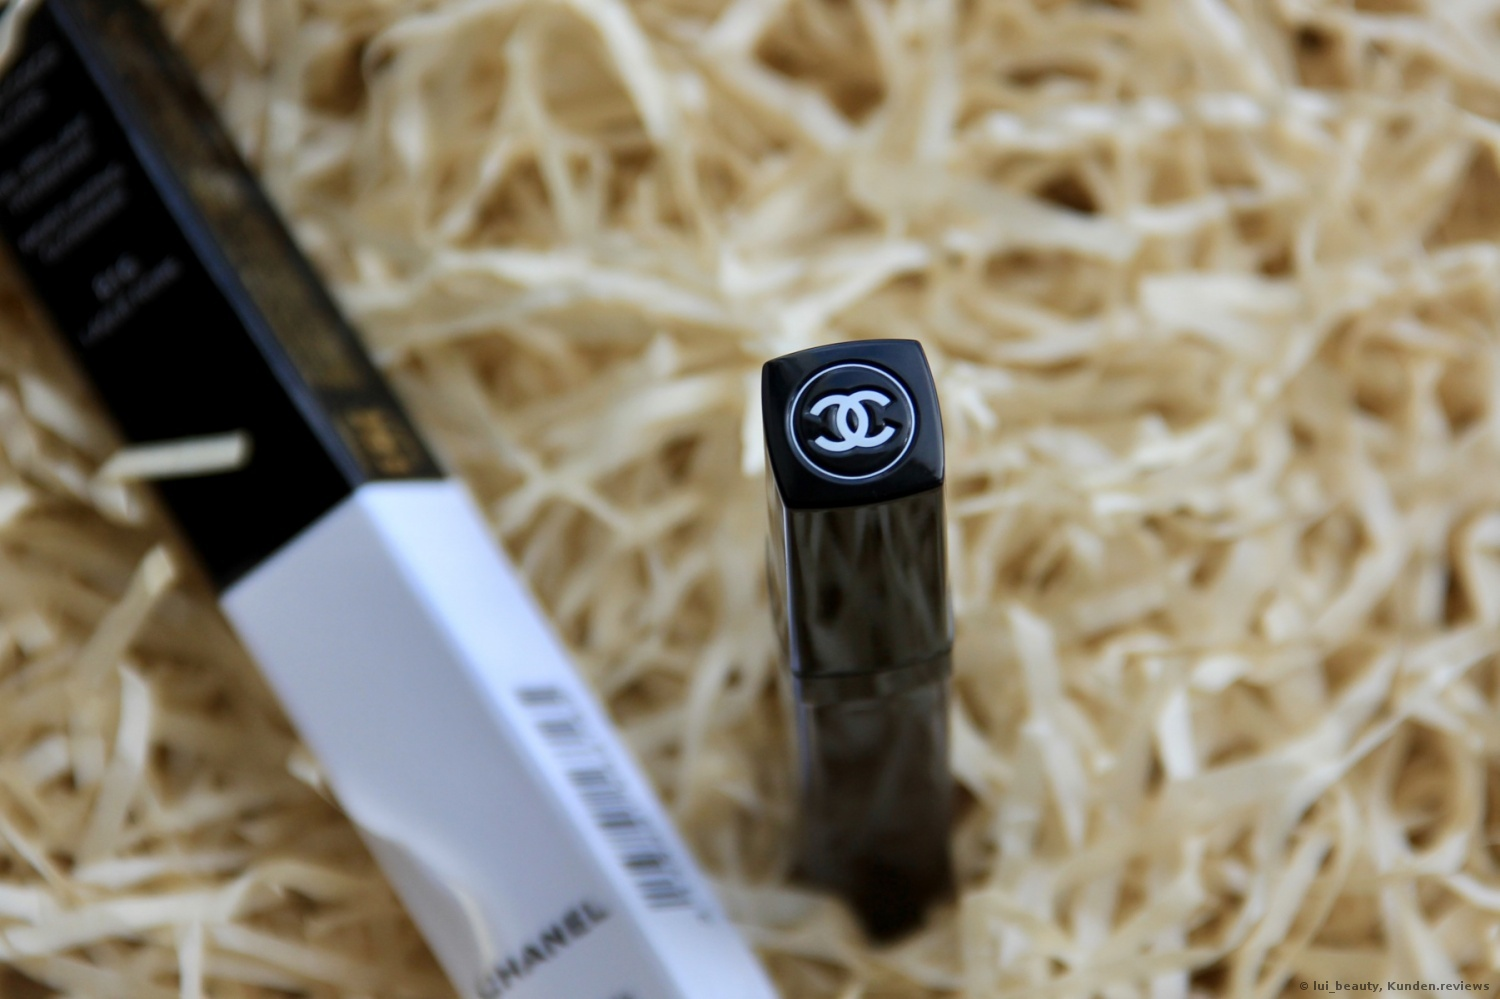 Lipgloss Chanel Rouge Coco 816 laque noire